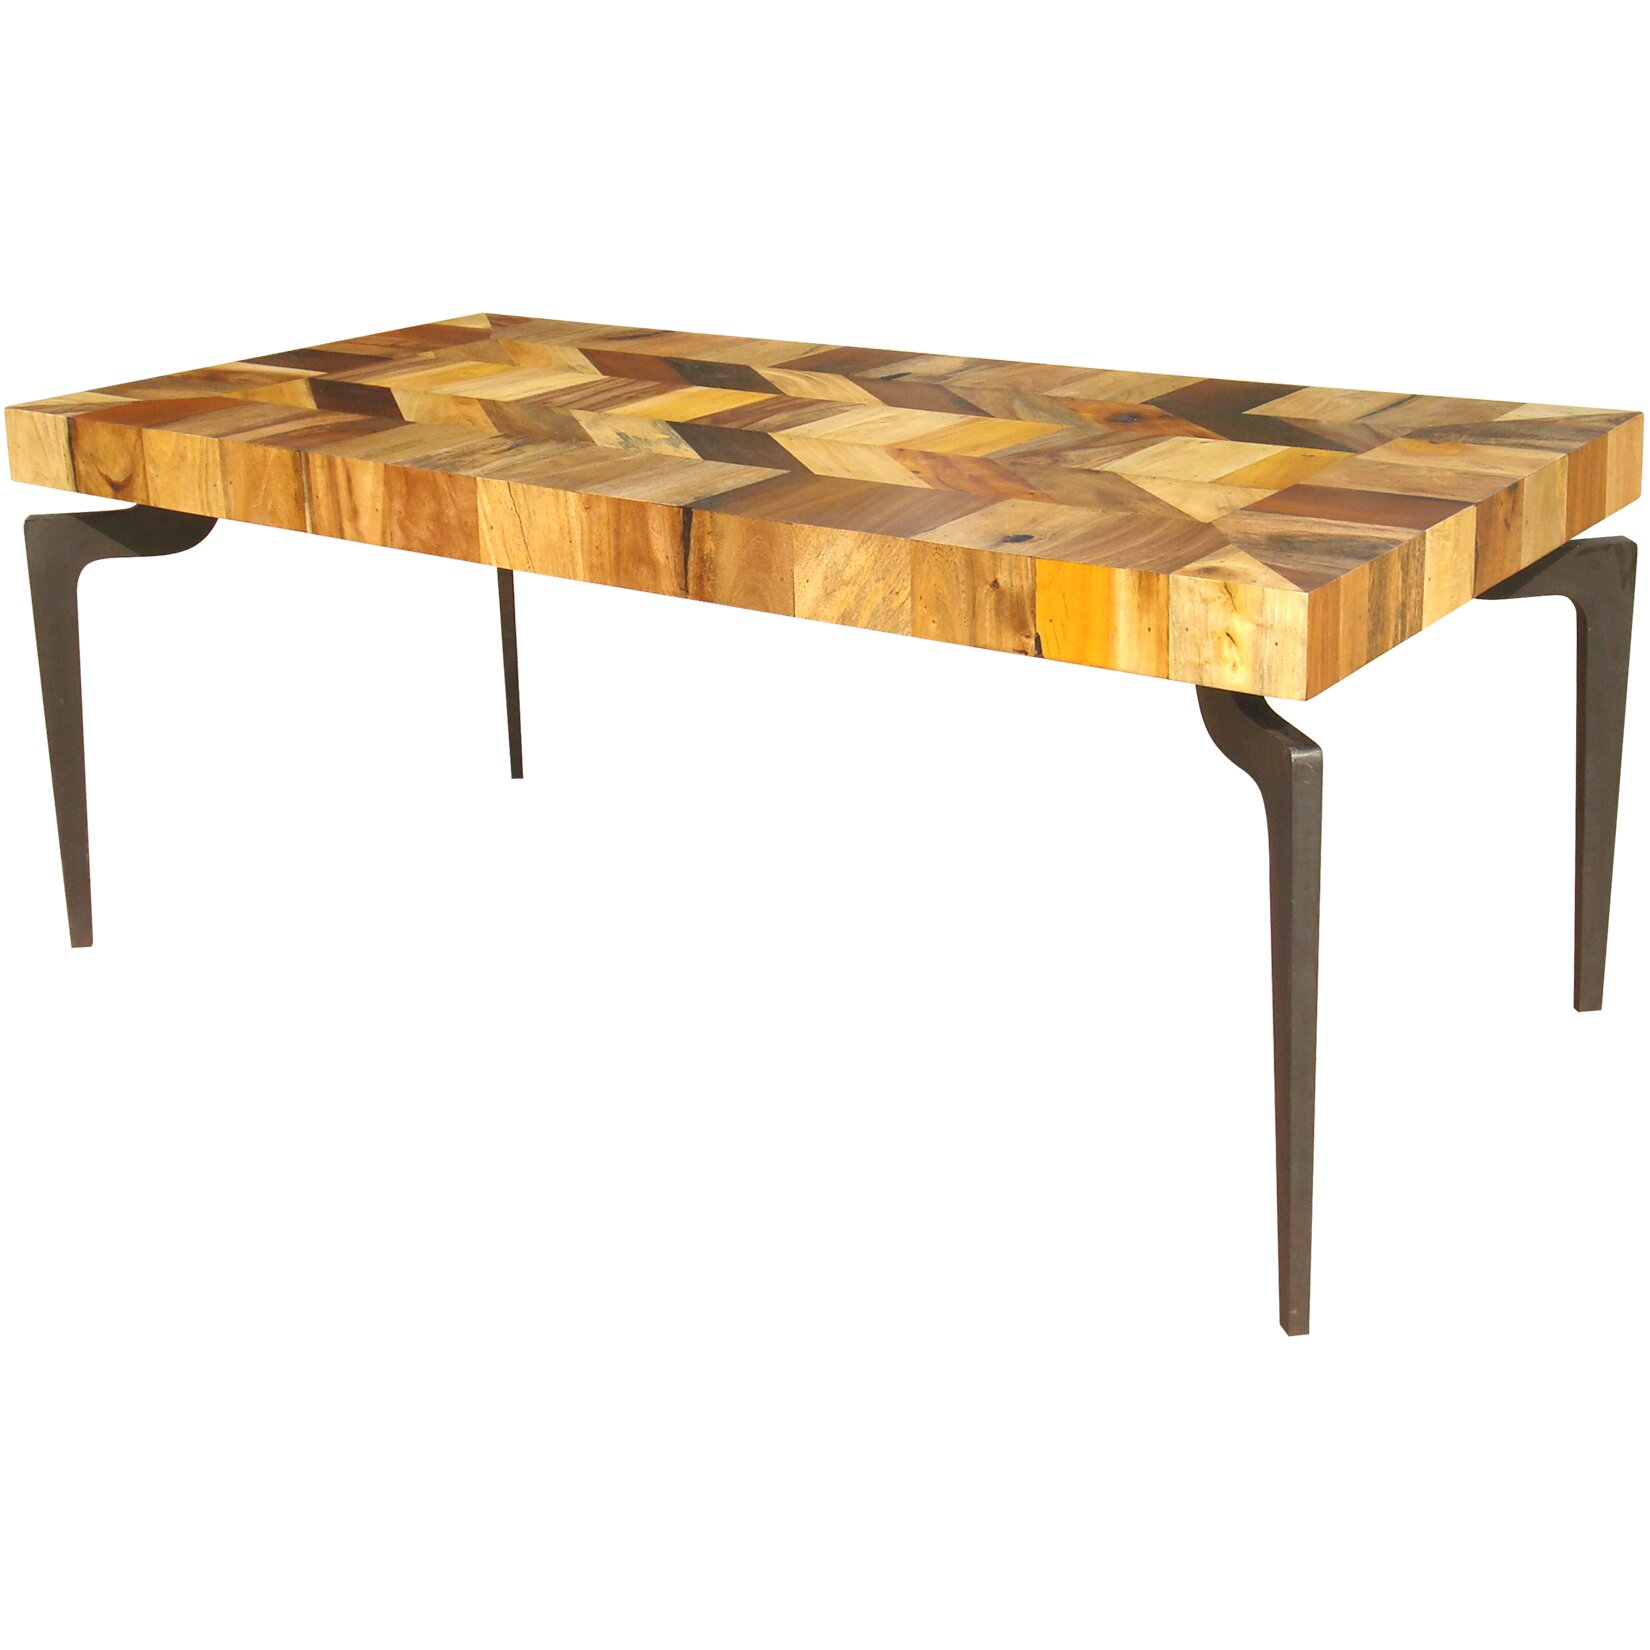 World menagerie spiva dining table wayfair for Wayfair dining table